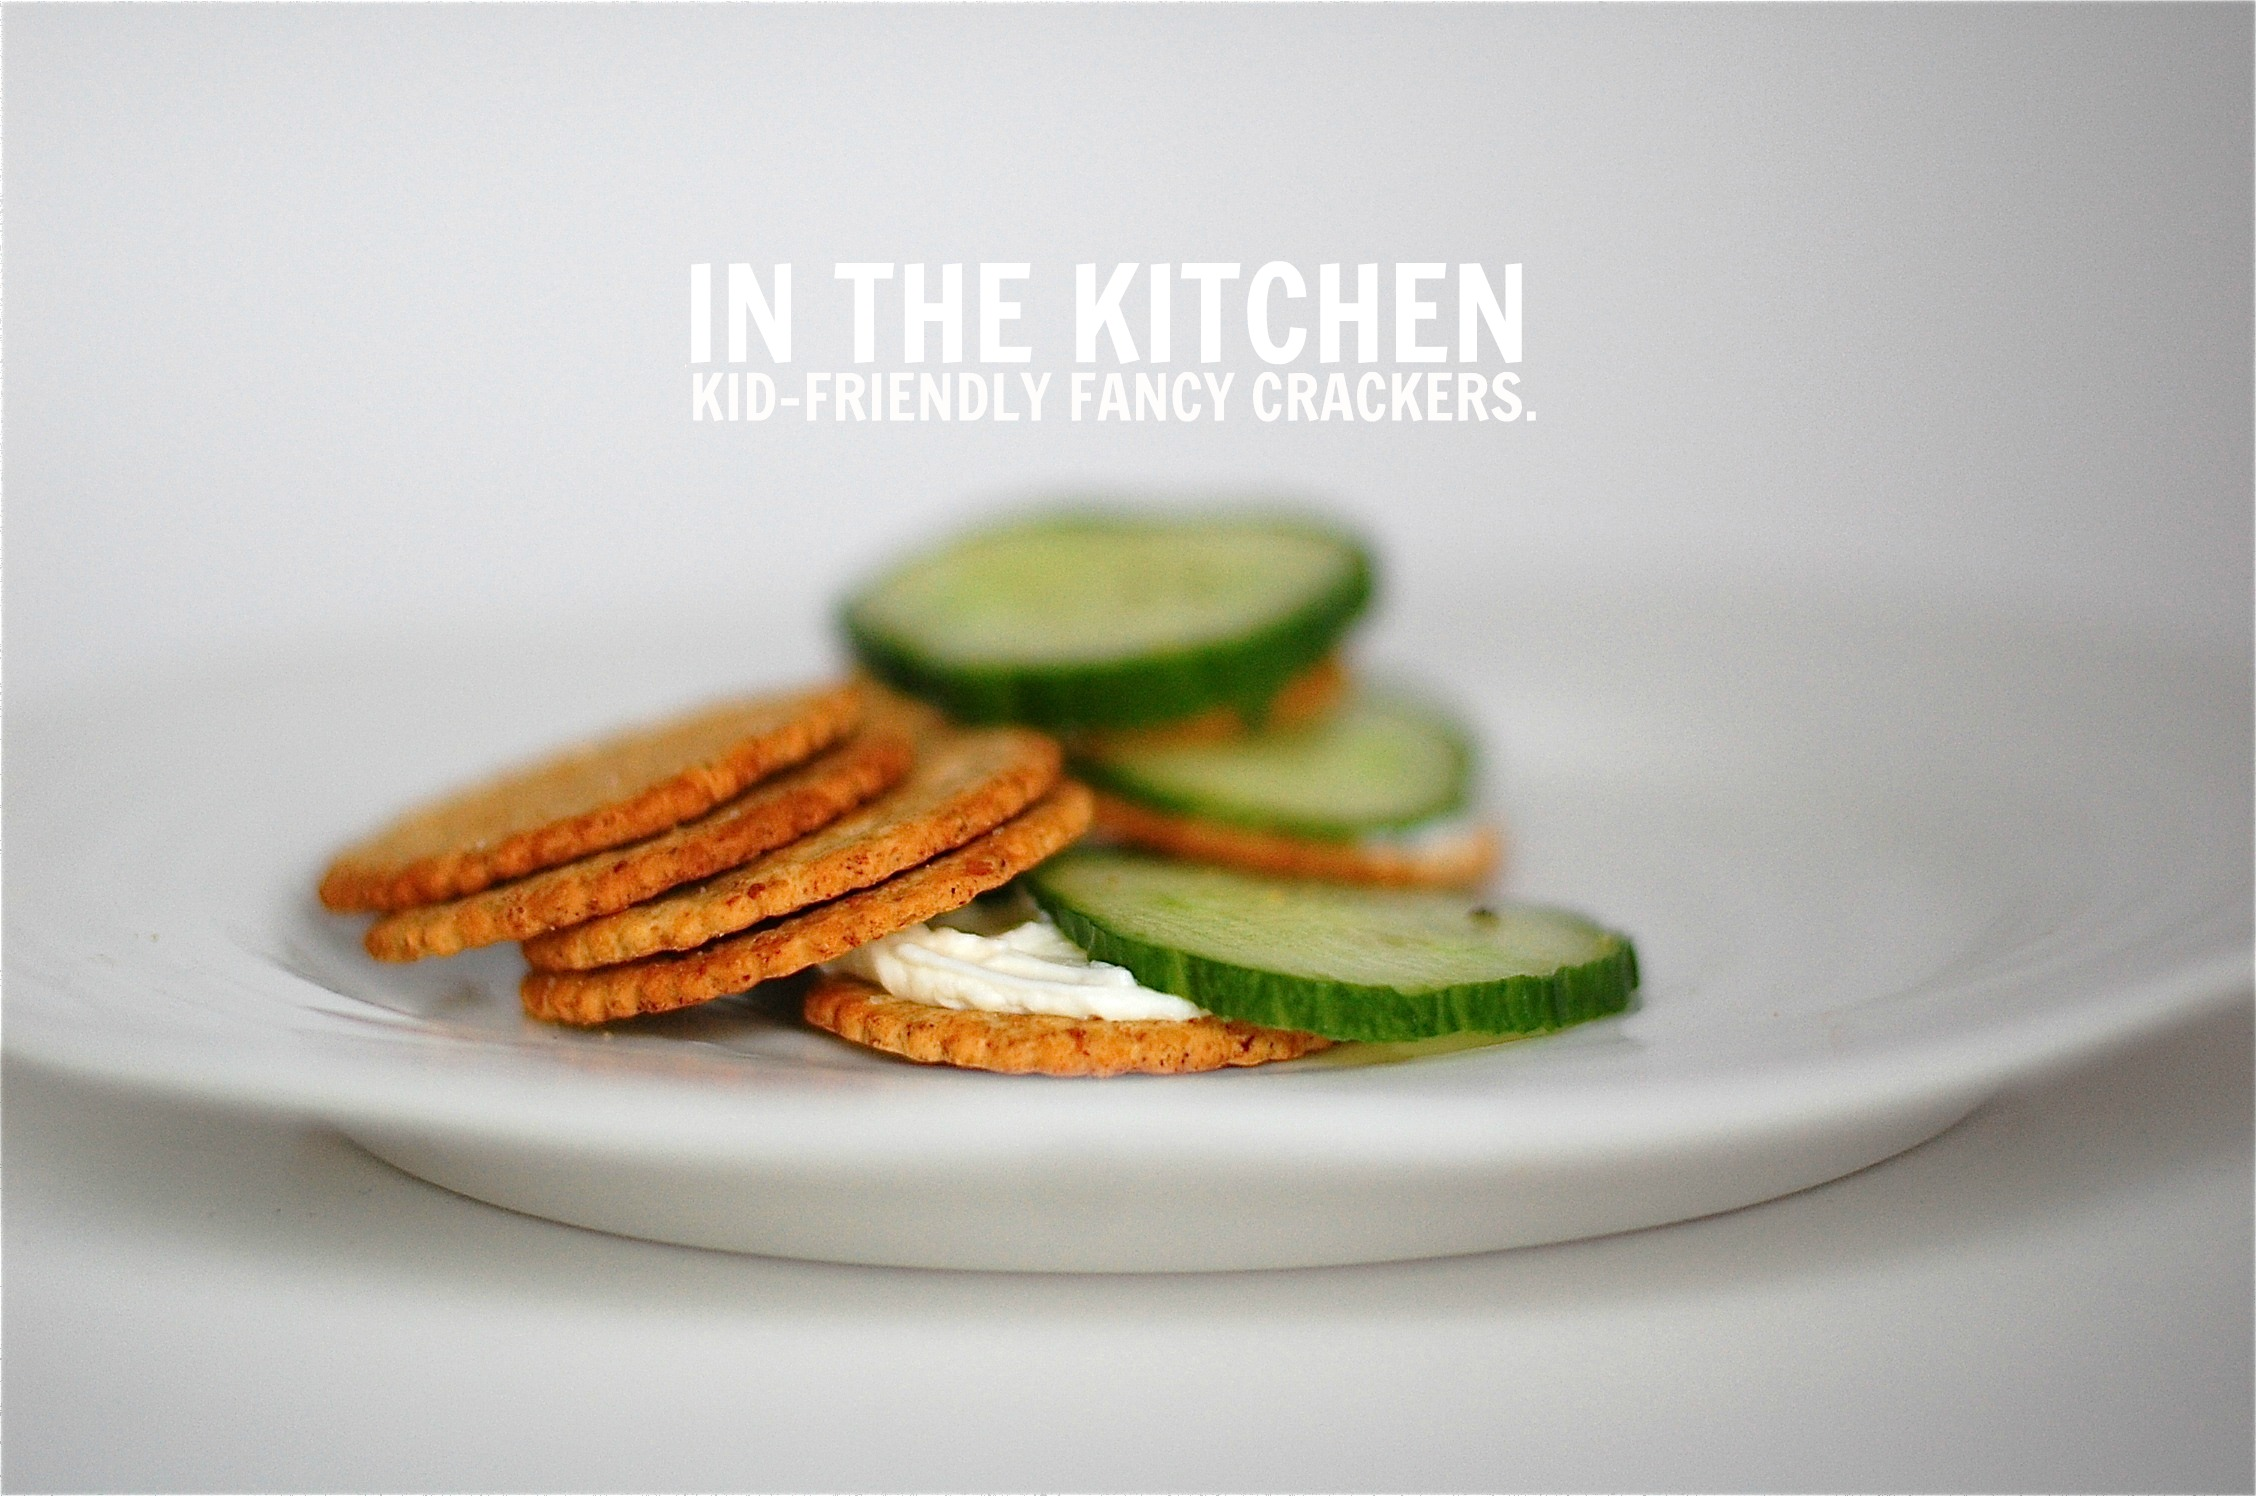 KITCHEN CRACKERS in the kitchen: kid friendly healthy & fancy crackers.